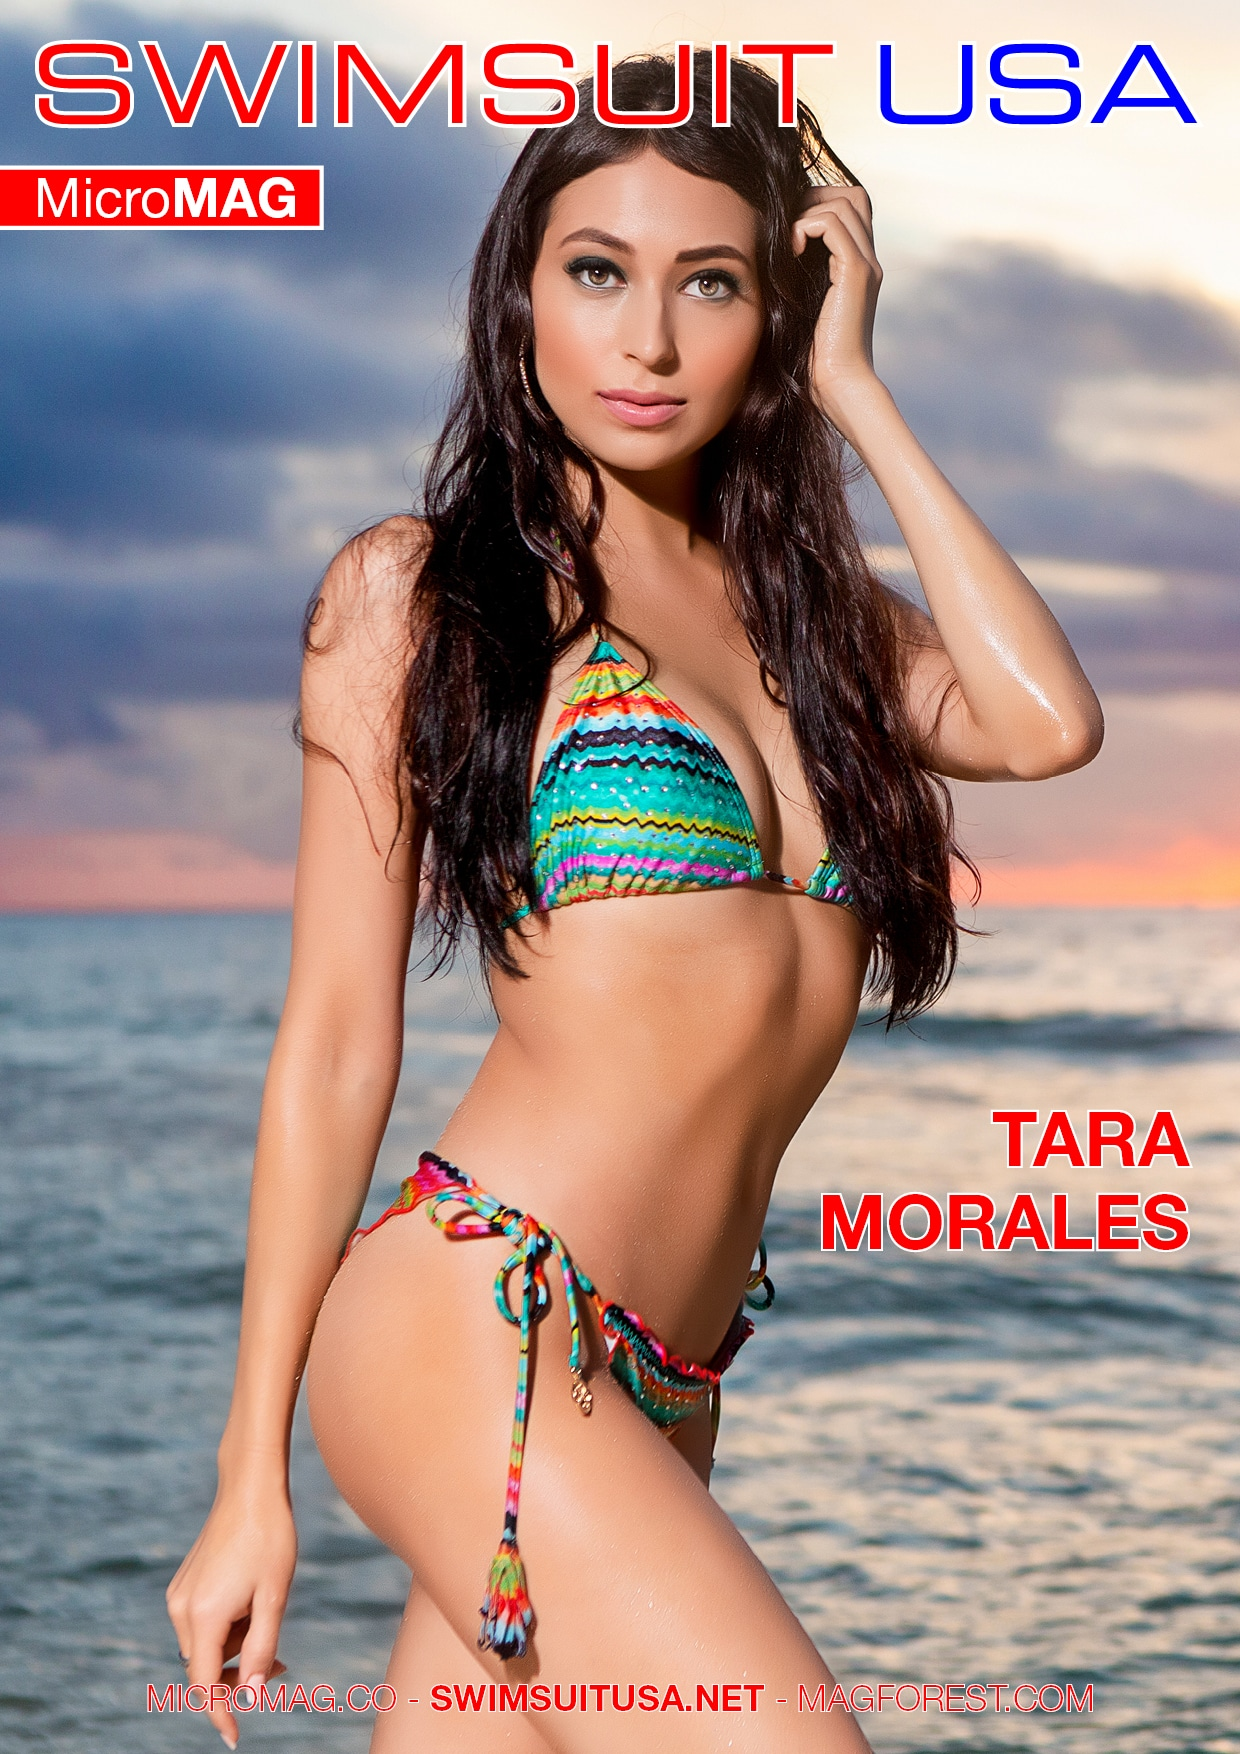 Swimsuit USA MicroMAG - Tara Morales - Issue 2 2